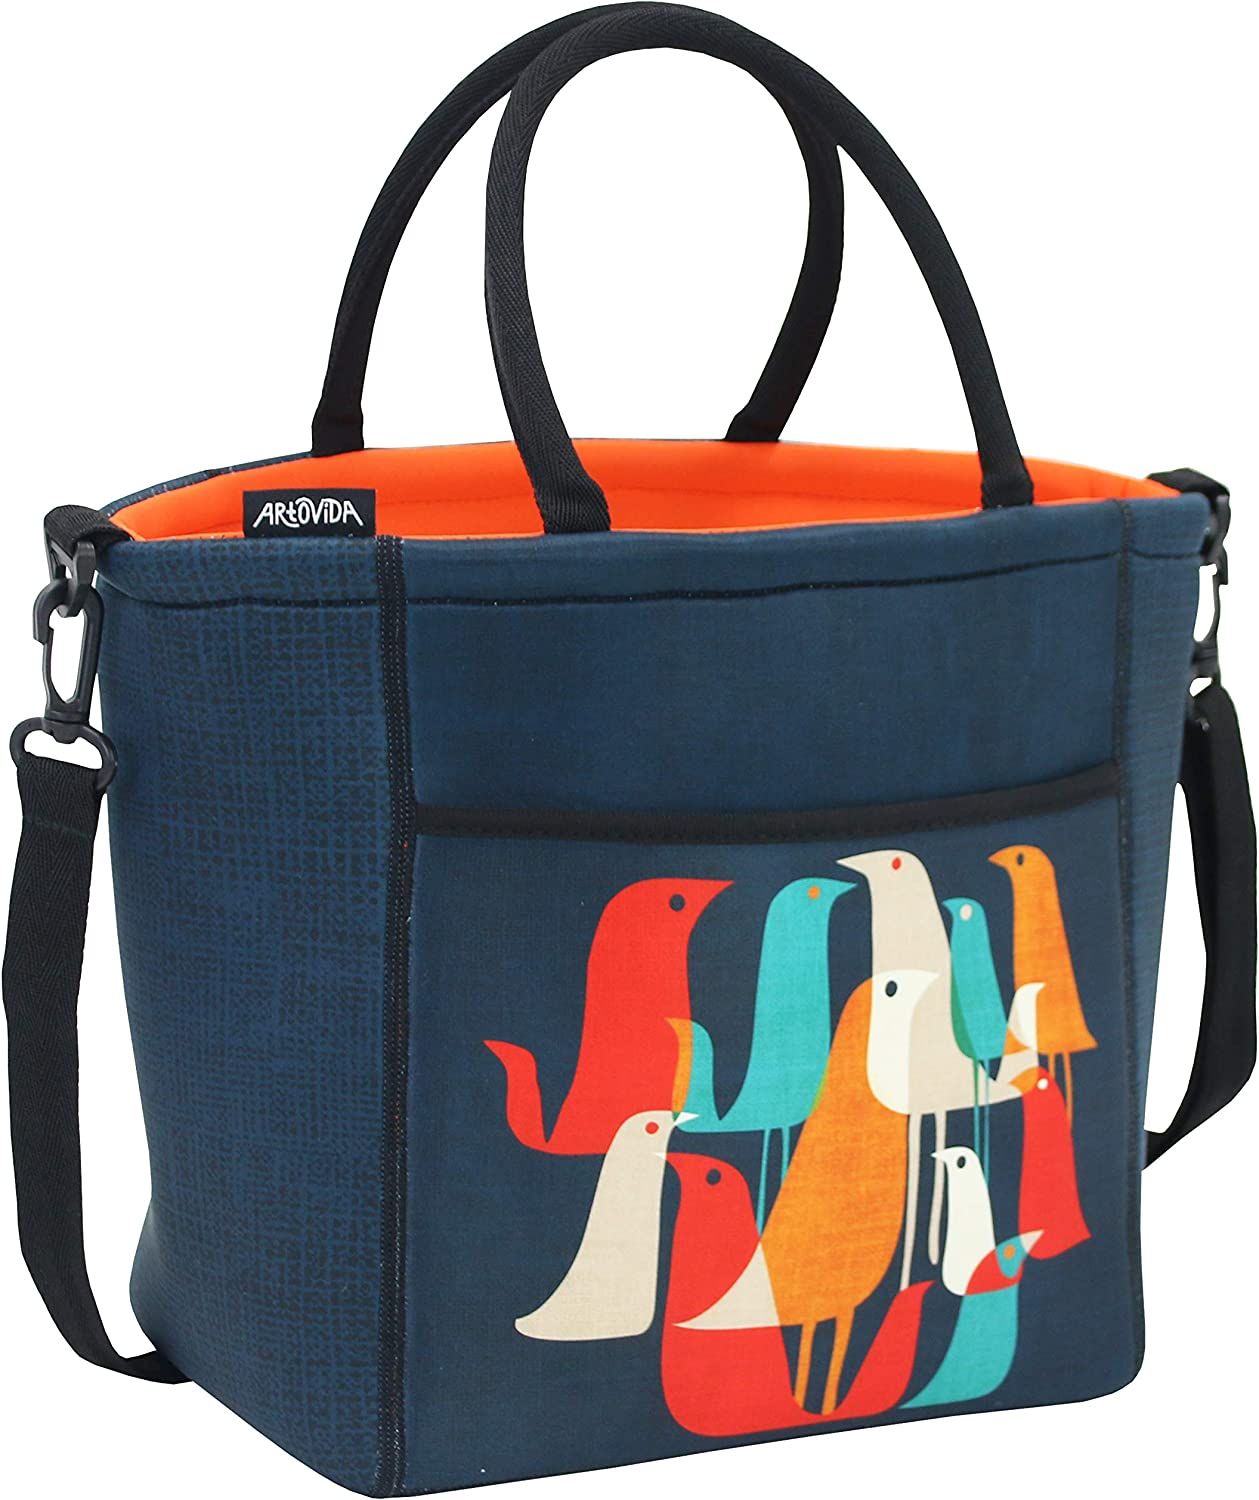 ARTOVIDA Tica Collection | Premium Extra Large Neoprene Lunch Bag Purse with Shoulder Strap & Pockets | Reusable Insulated Tote for Women, Work and School | Budi Kwan from Indonesia - Flock of Birds